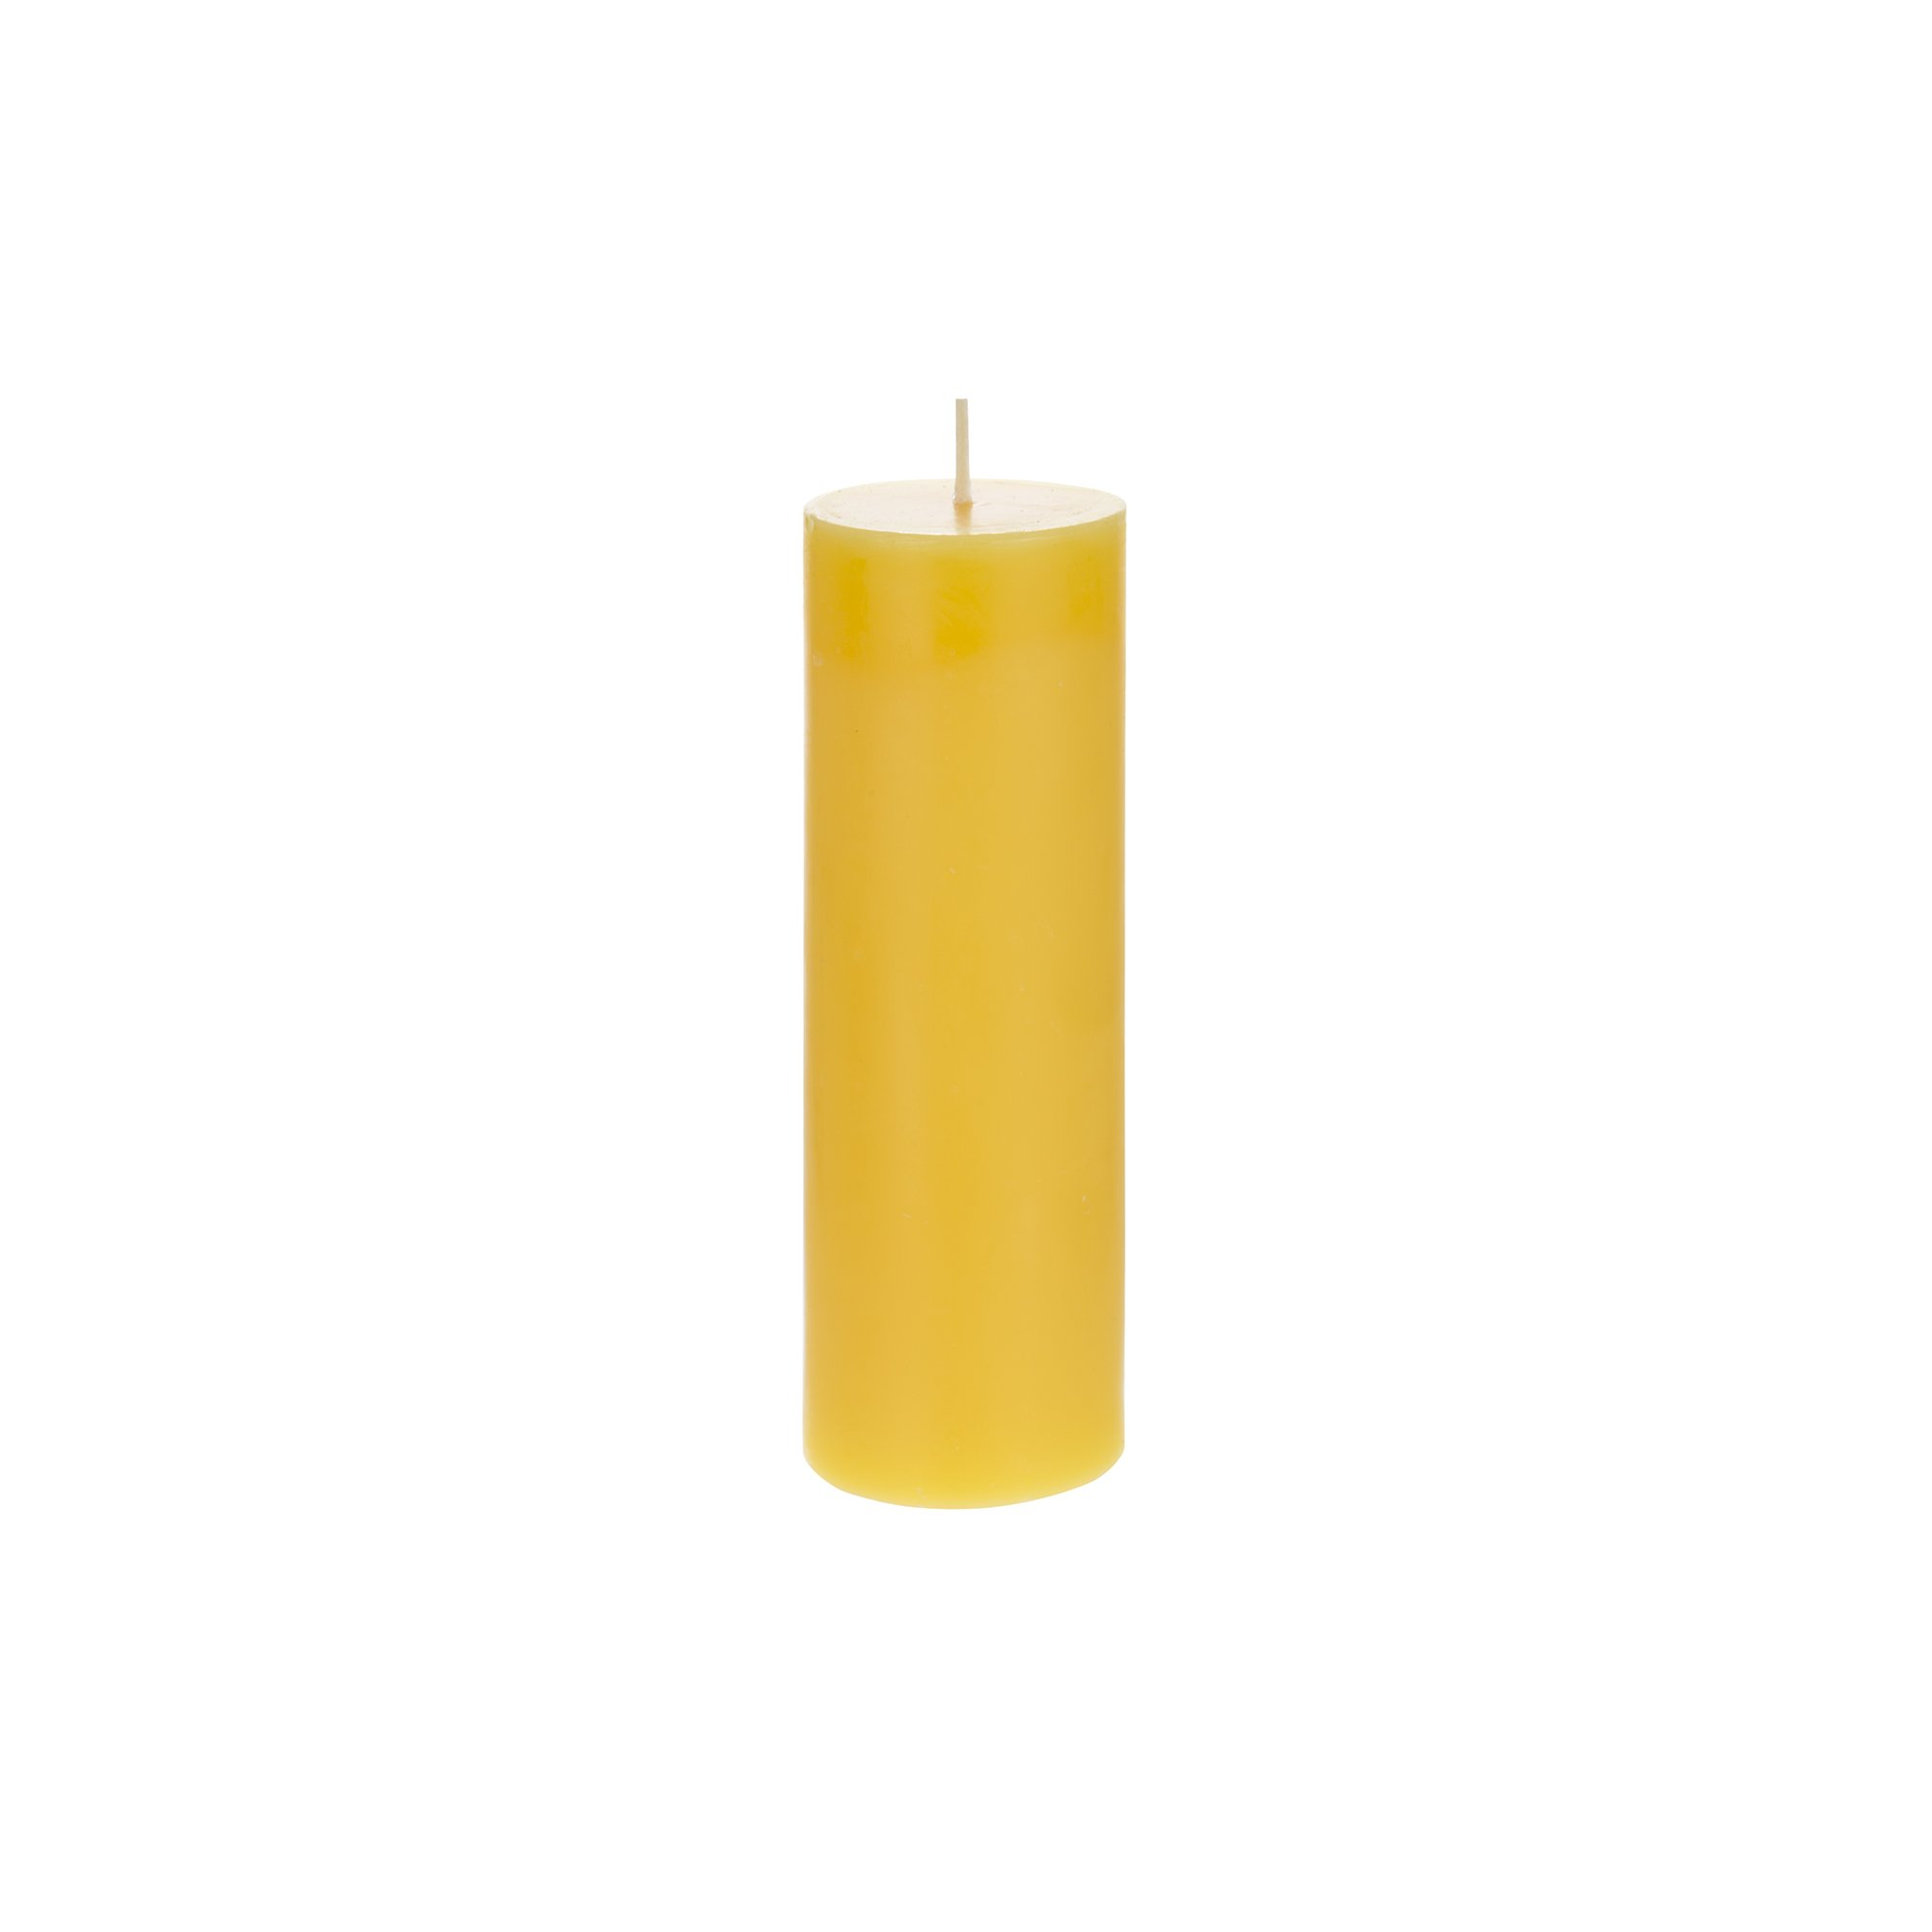 Mega Candles 3 pcs Citronella Round Pillar Candle | Hand Poured Paraffin Wax Candles 2'' x 6'' | Bug Repellent Candles For Indoor And Outdoor Use | Everyday Candles For Mosquitoes And Insects by Mega Candles (Image #3)